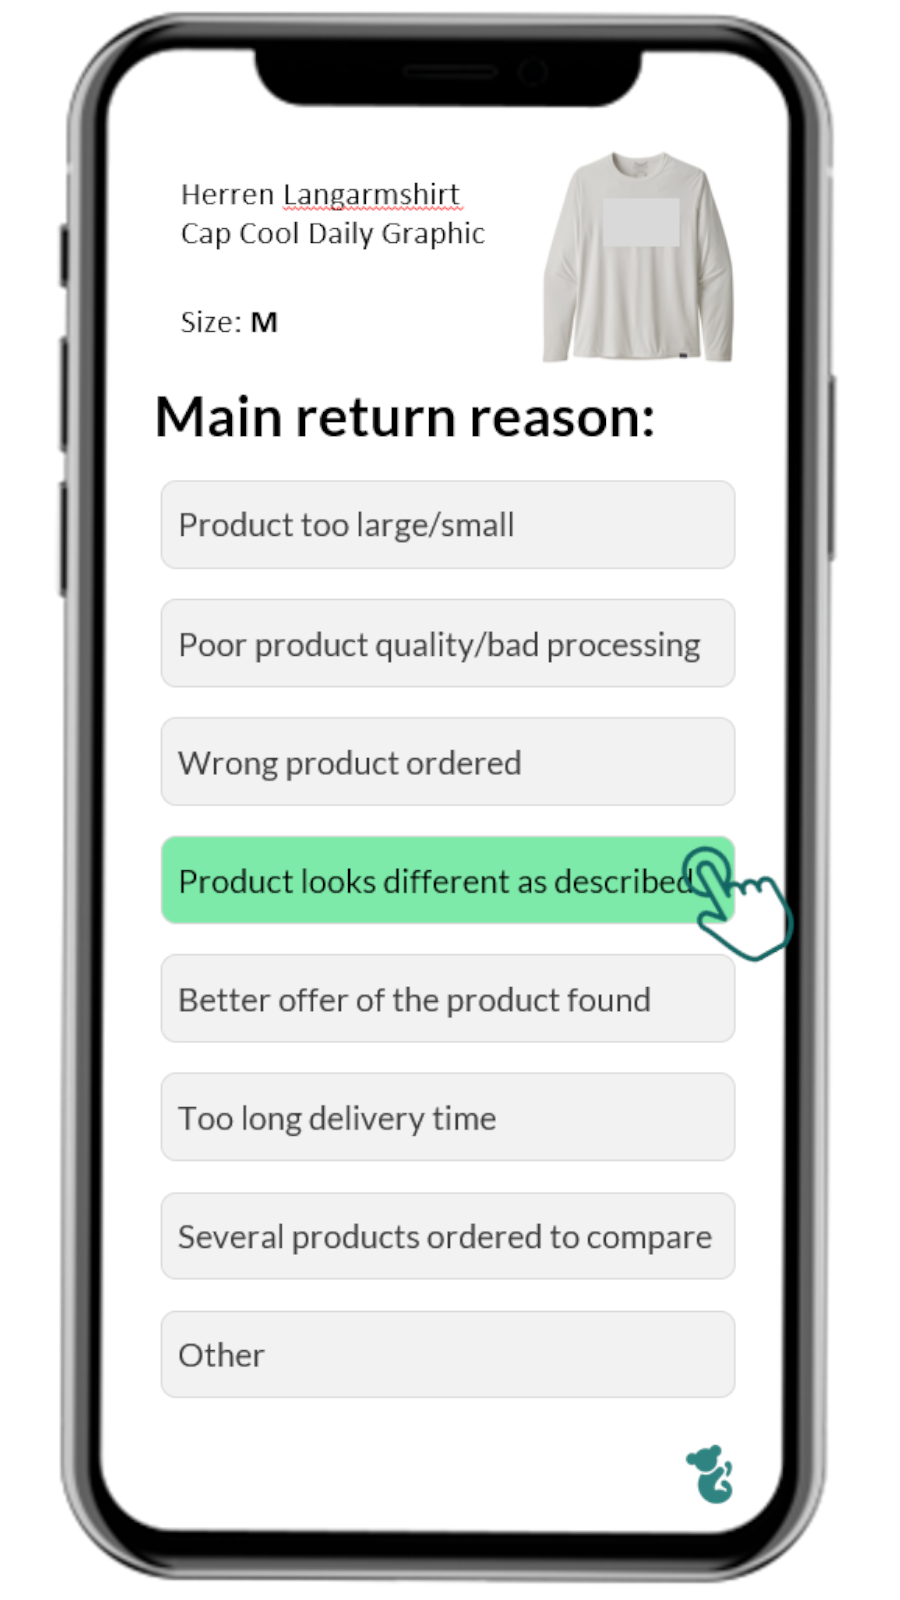 Return questions in the app - Give the main reason